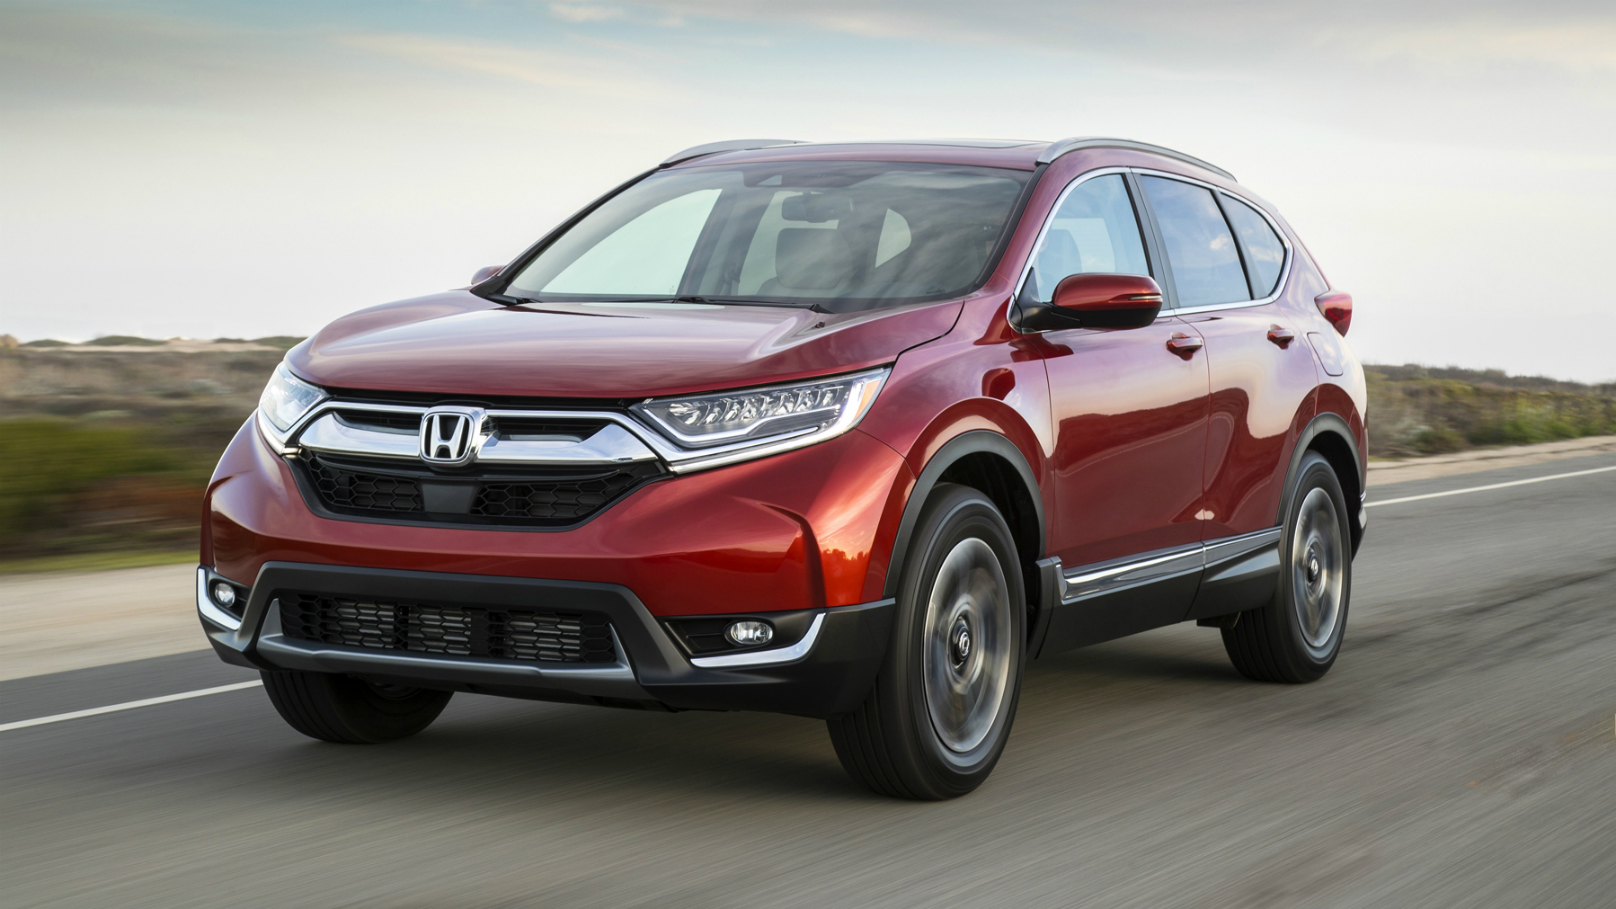 Honda CR-V safety